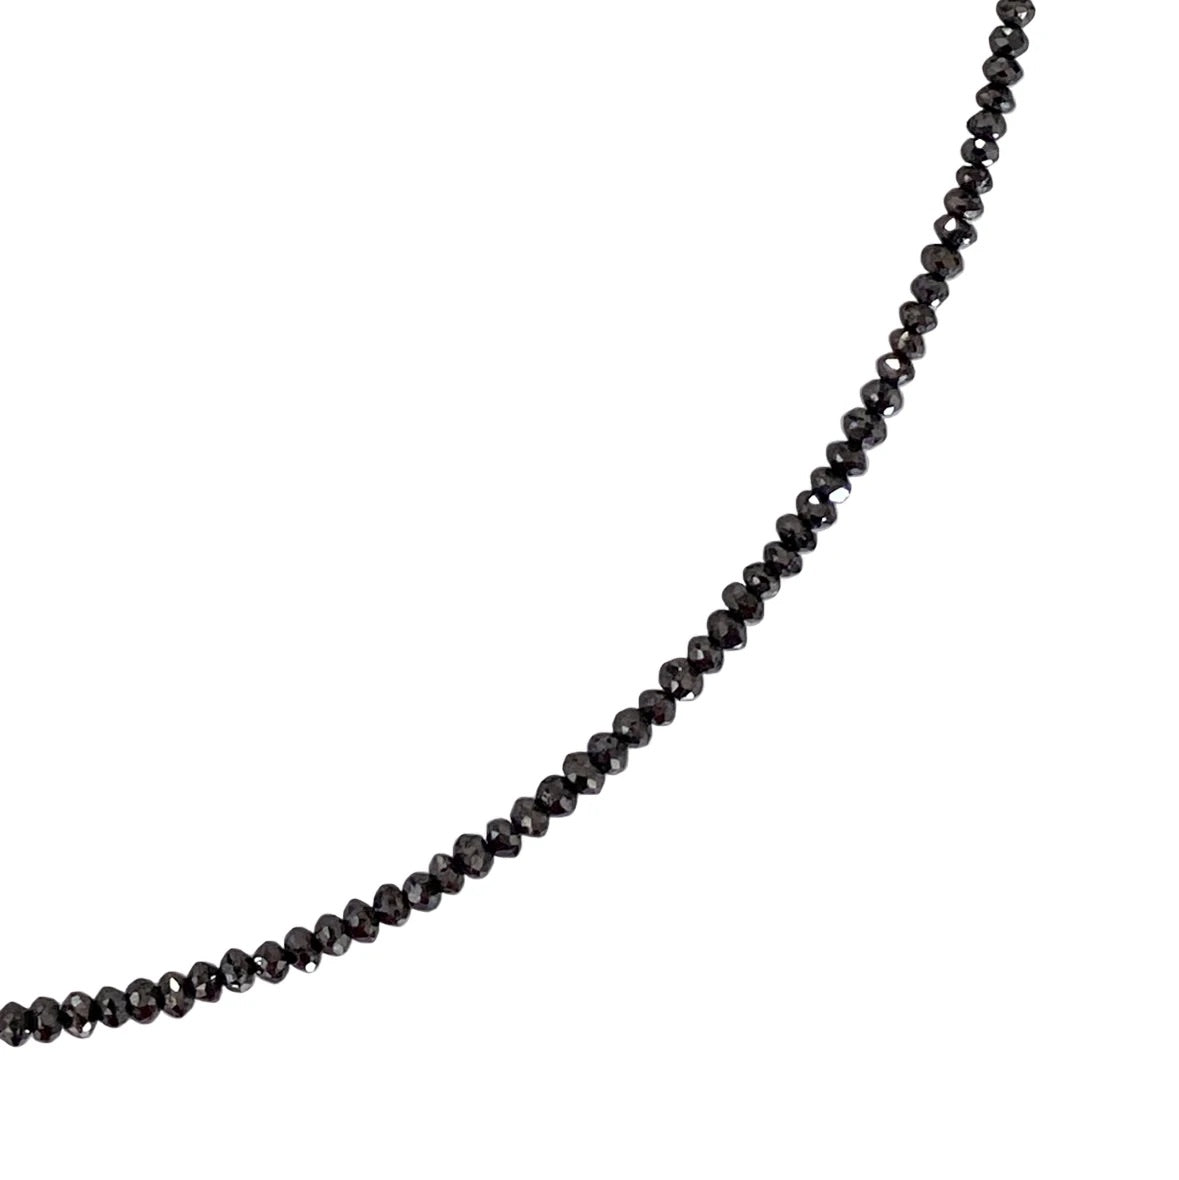 Eternity Bracelet (Black Diamond)